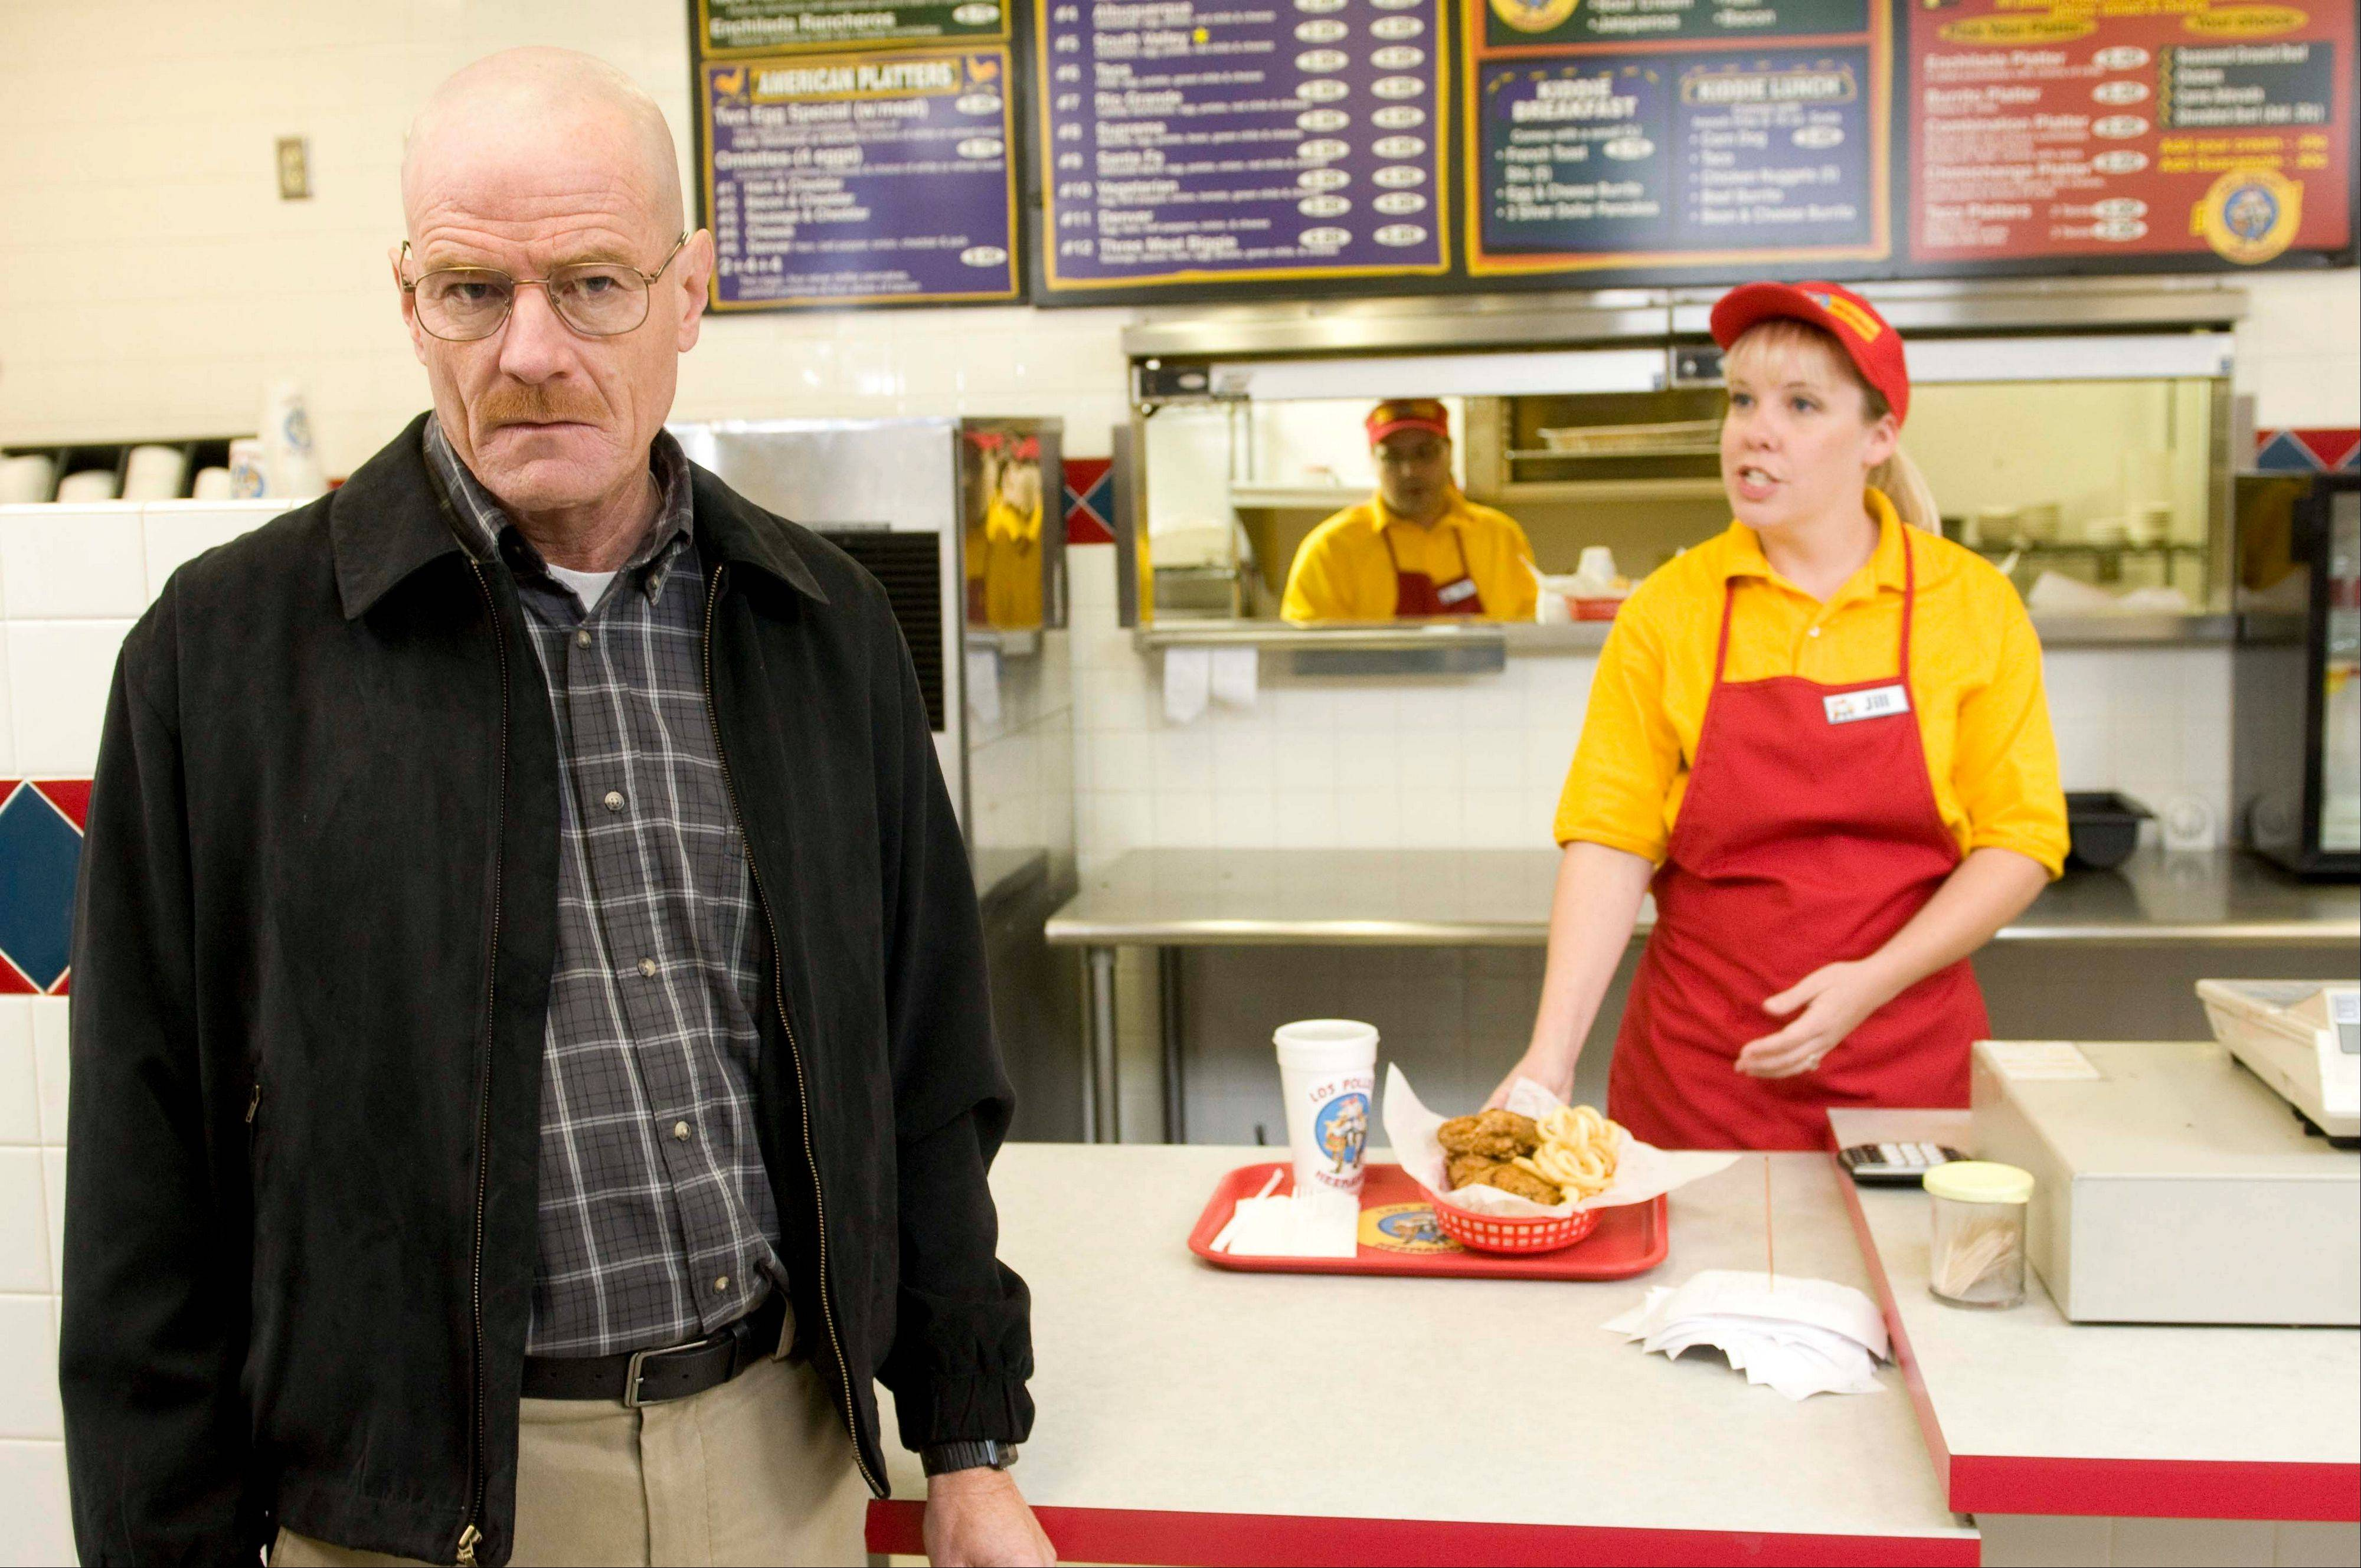 "Bryan Cranston as Walter White in a scene from the popular AMC series ""Breaking Bad."" A Twisters burrito restaurant in Albuquerque that serves as the location for the restaurant in the show has become an international tourist attraction as people come from all over the world to see the spot where a fictional drug trafficker runs his organization."